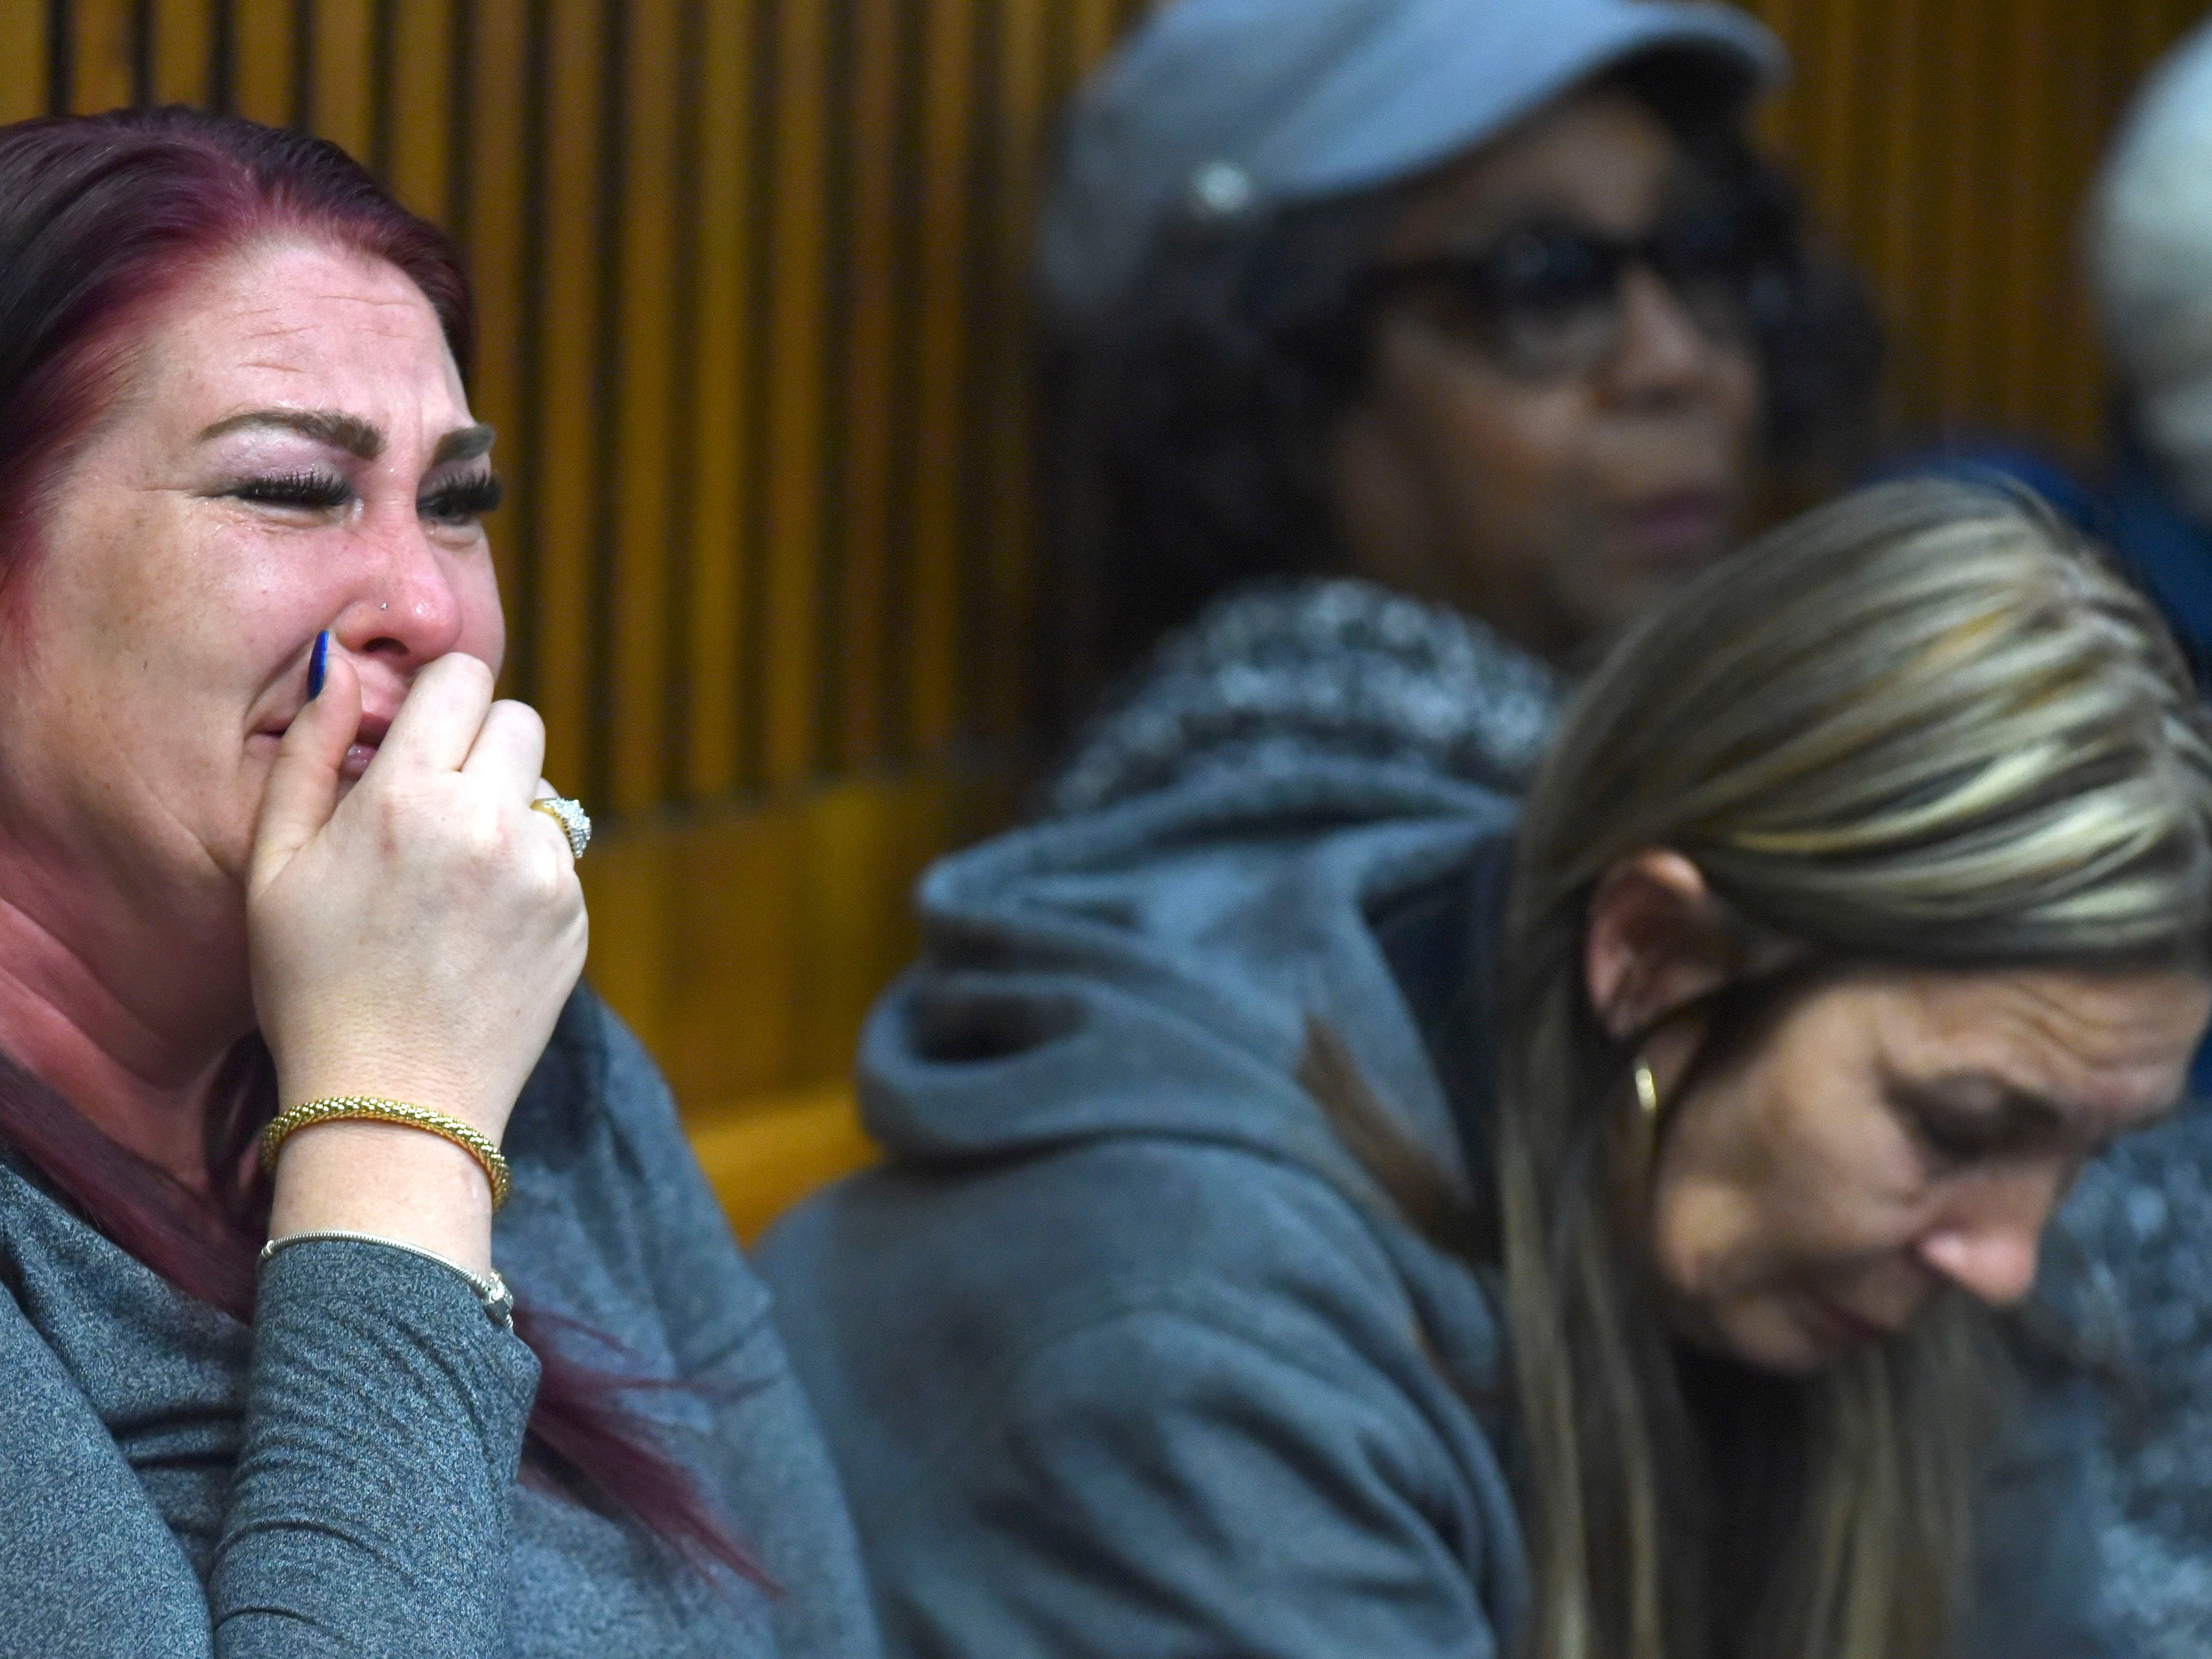 Natalie Brooks, left, wife of murderer Decharlos Brooks, cries while sitting with her mother, Candace Scott, right, as Decharlos is sentenced to 36 to 60 years in prison.